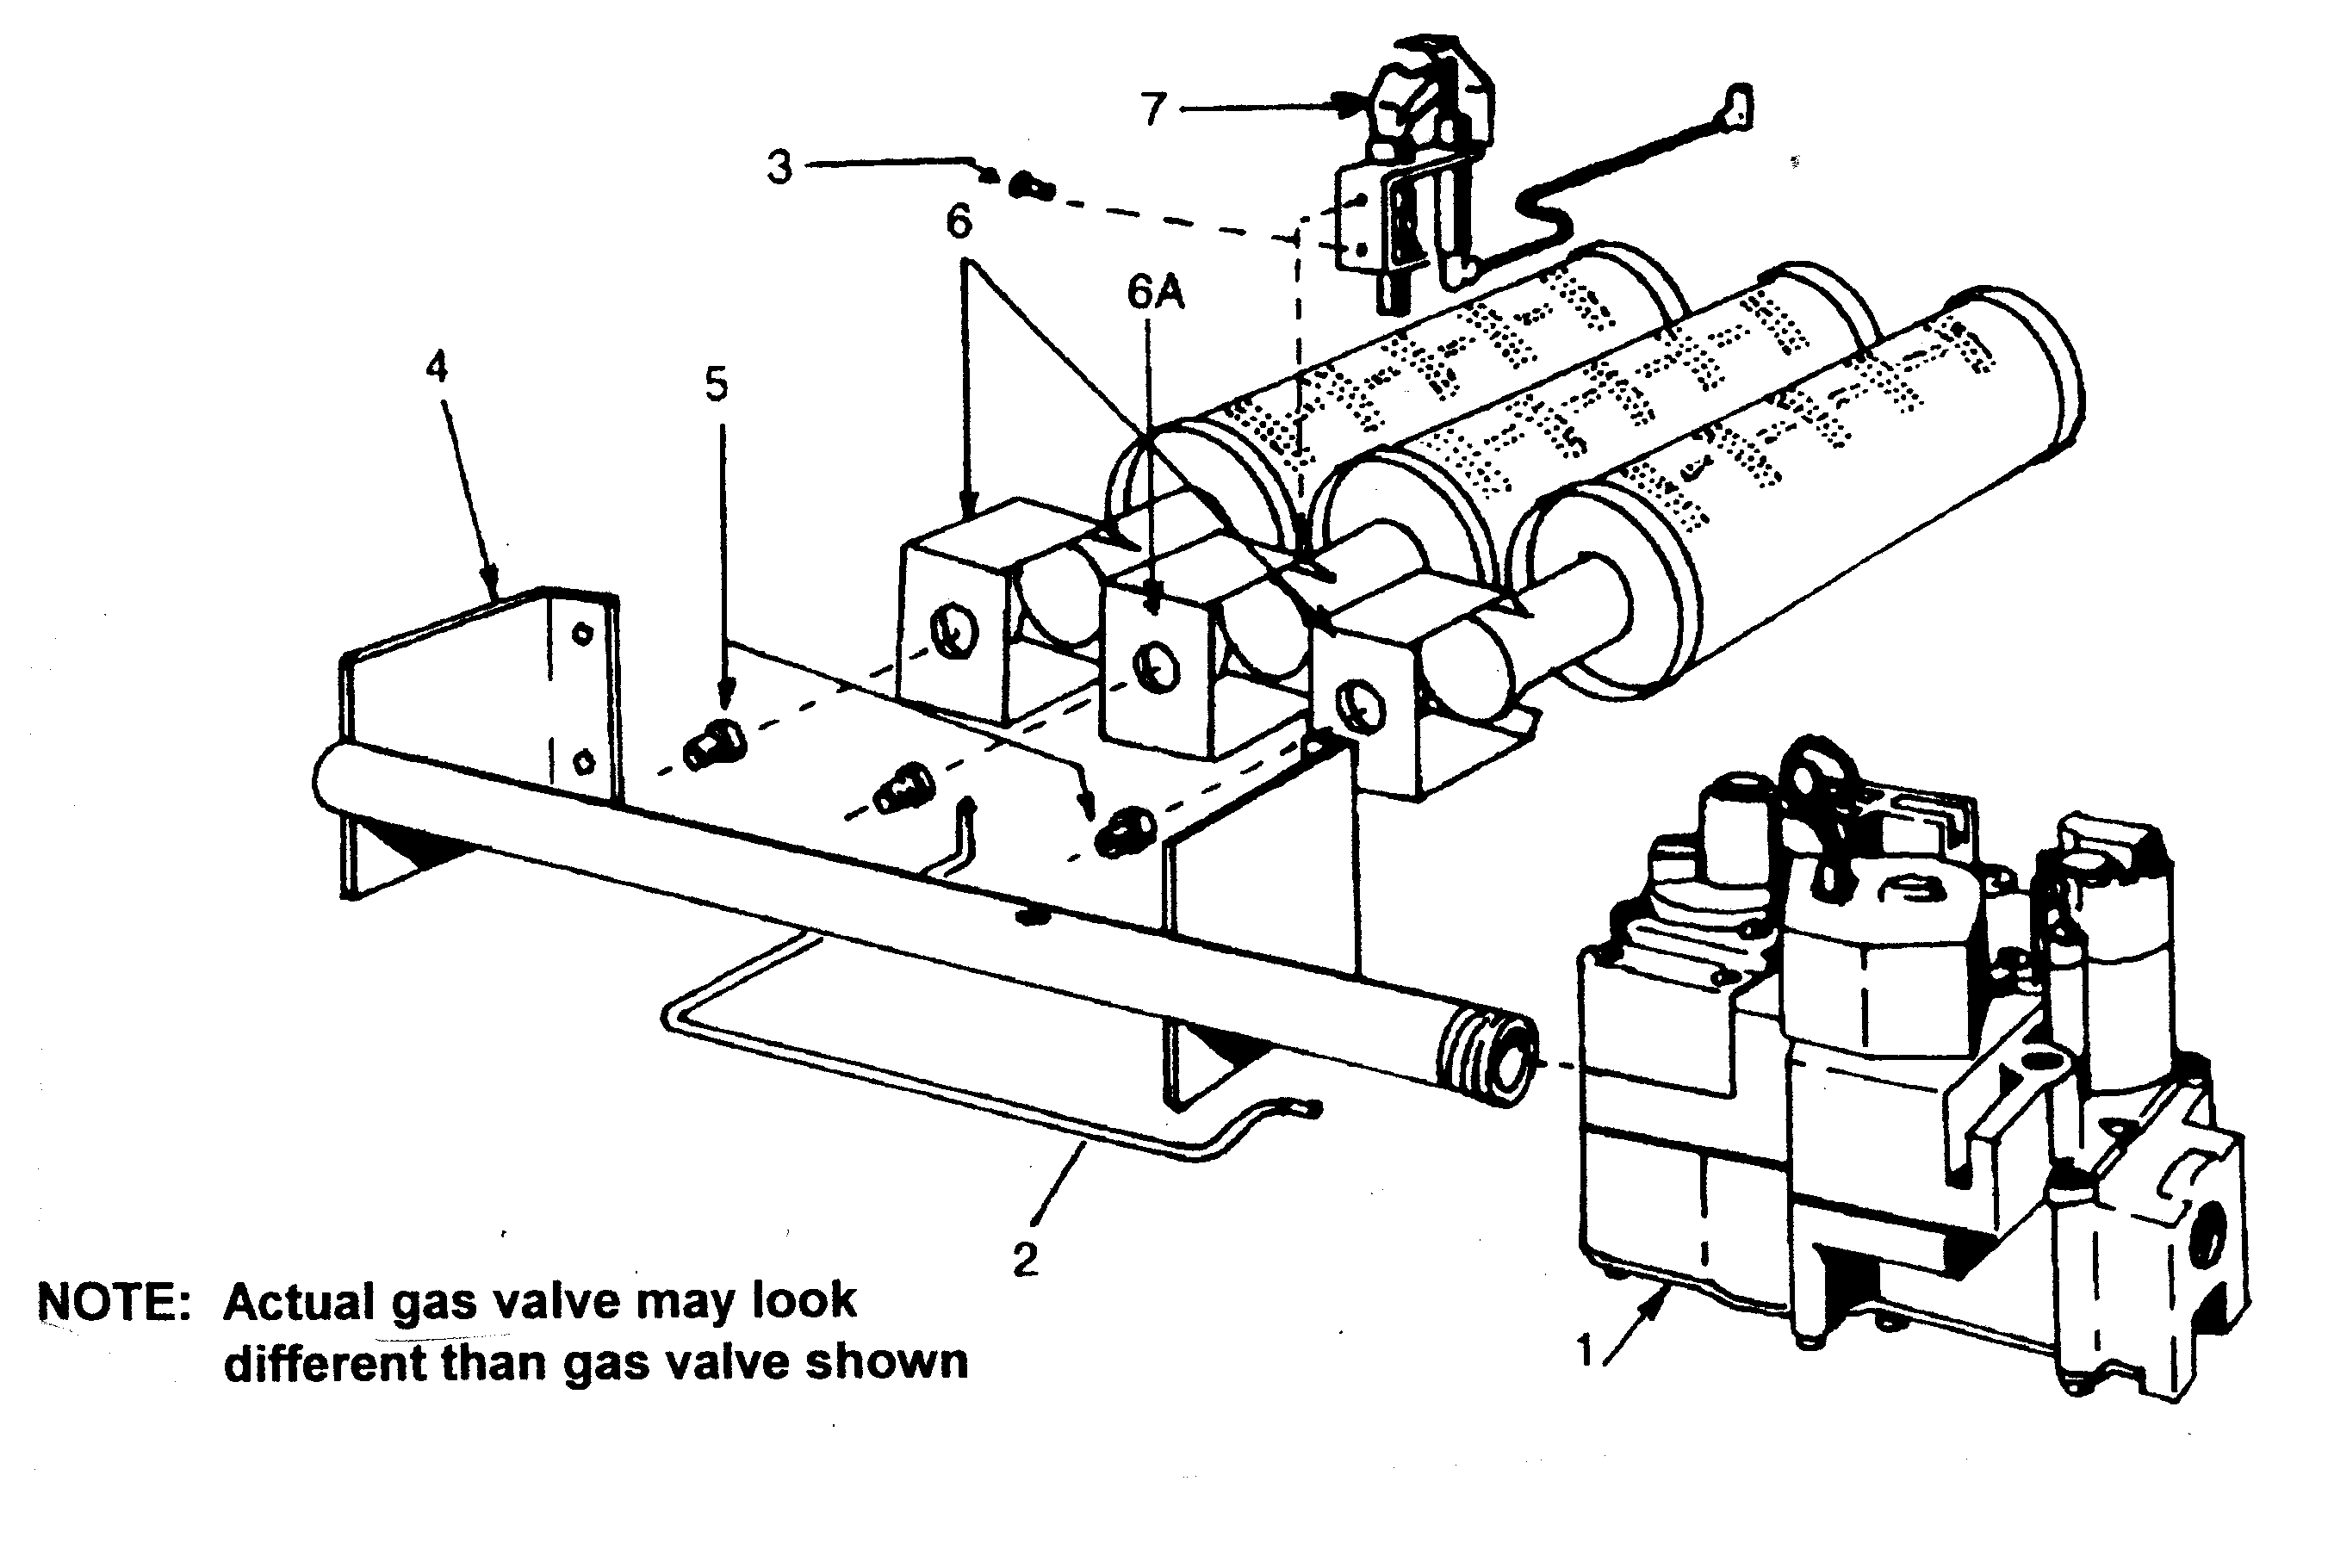 Oil Fired Boiler Diagram Oil Burning Boiler Diagram Wiring